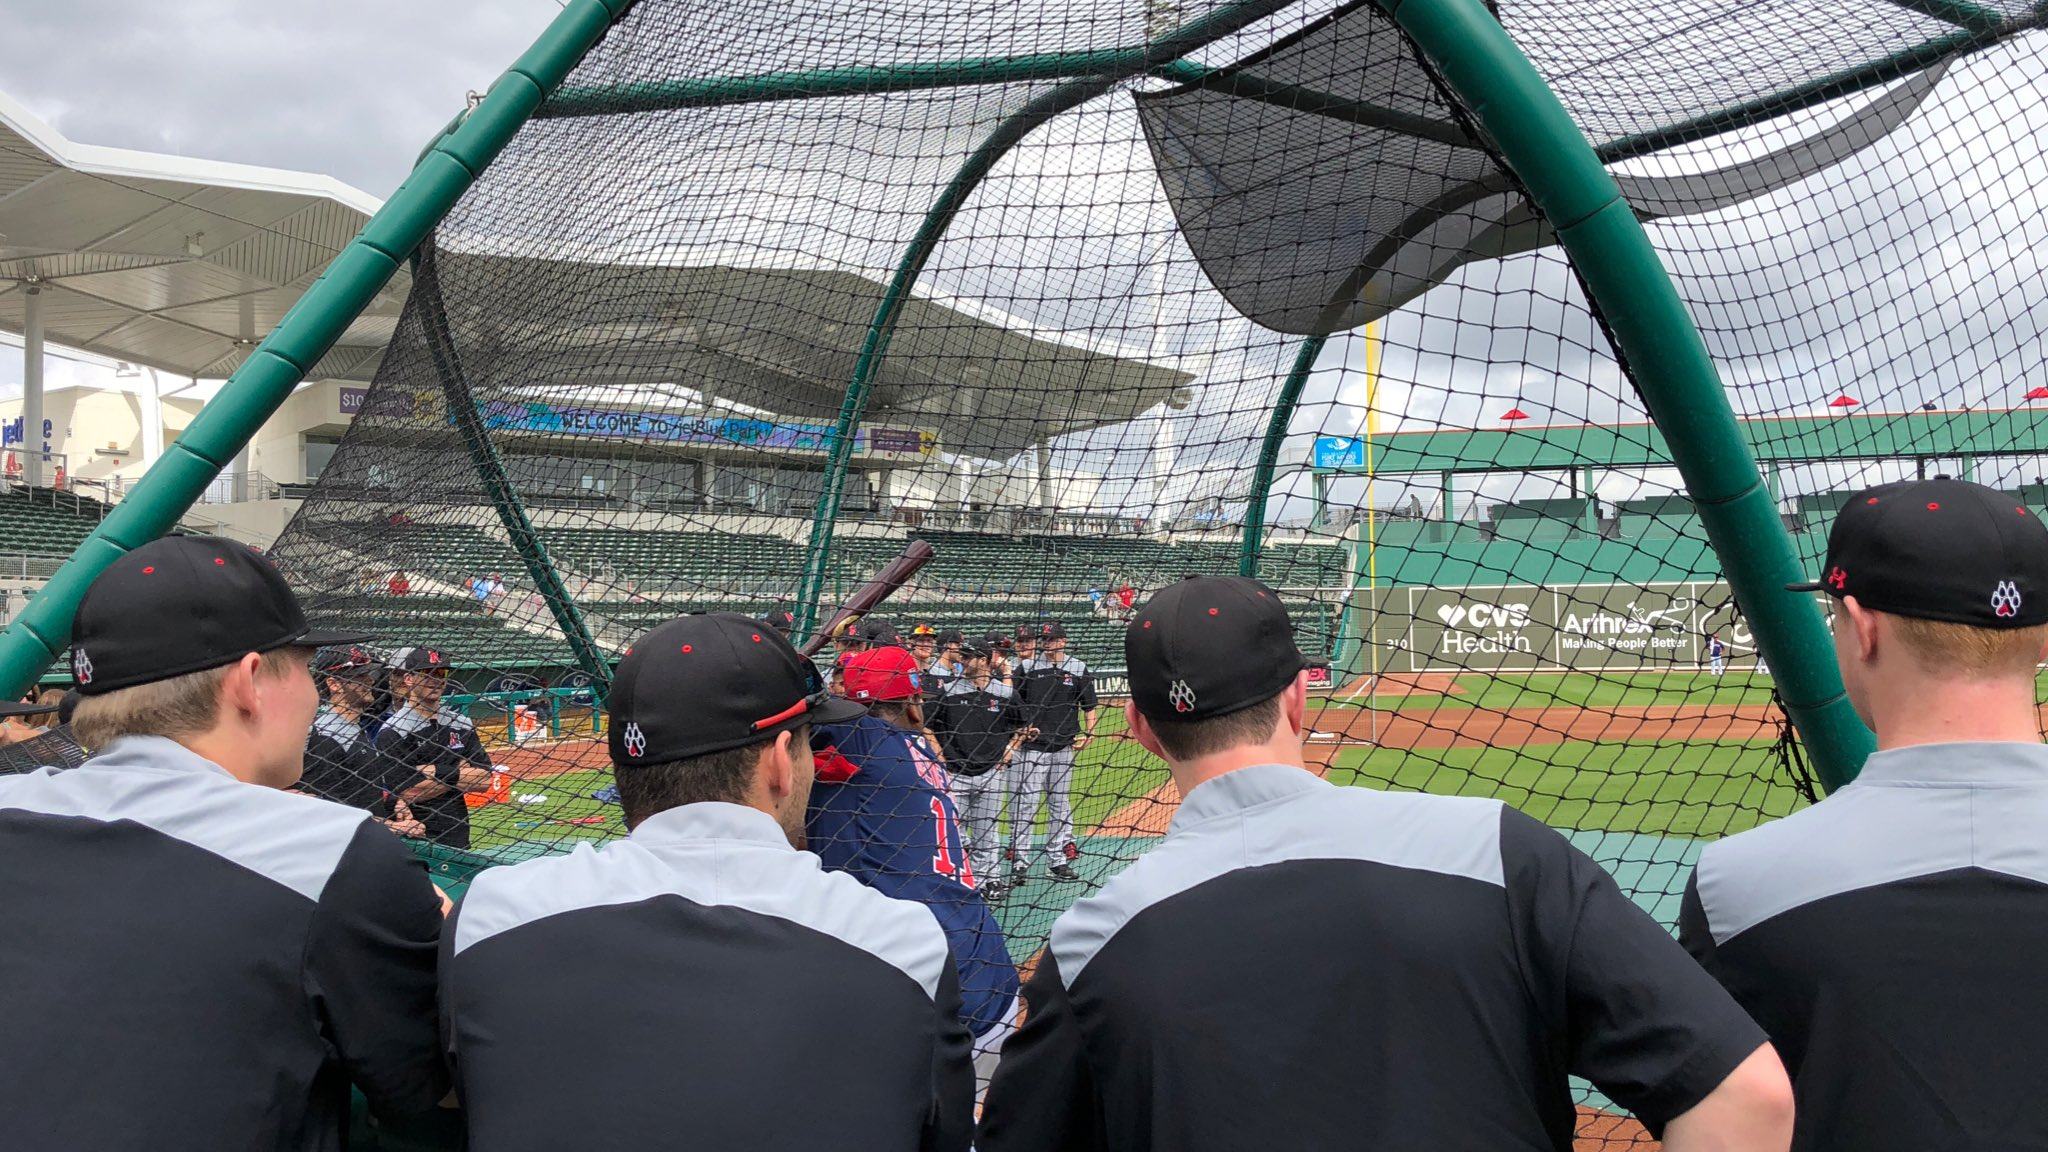 Cool moment for @GoNUbaseball as they watch #SoxBP. https://t.co/gbYGfljpPQ